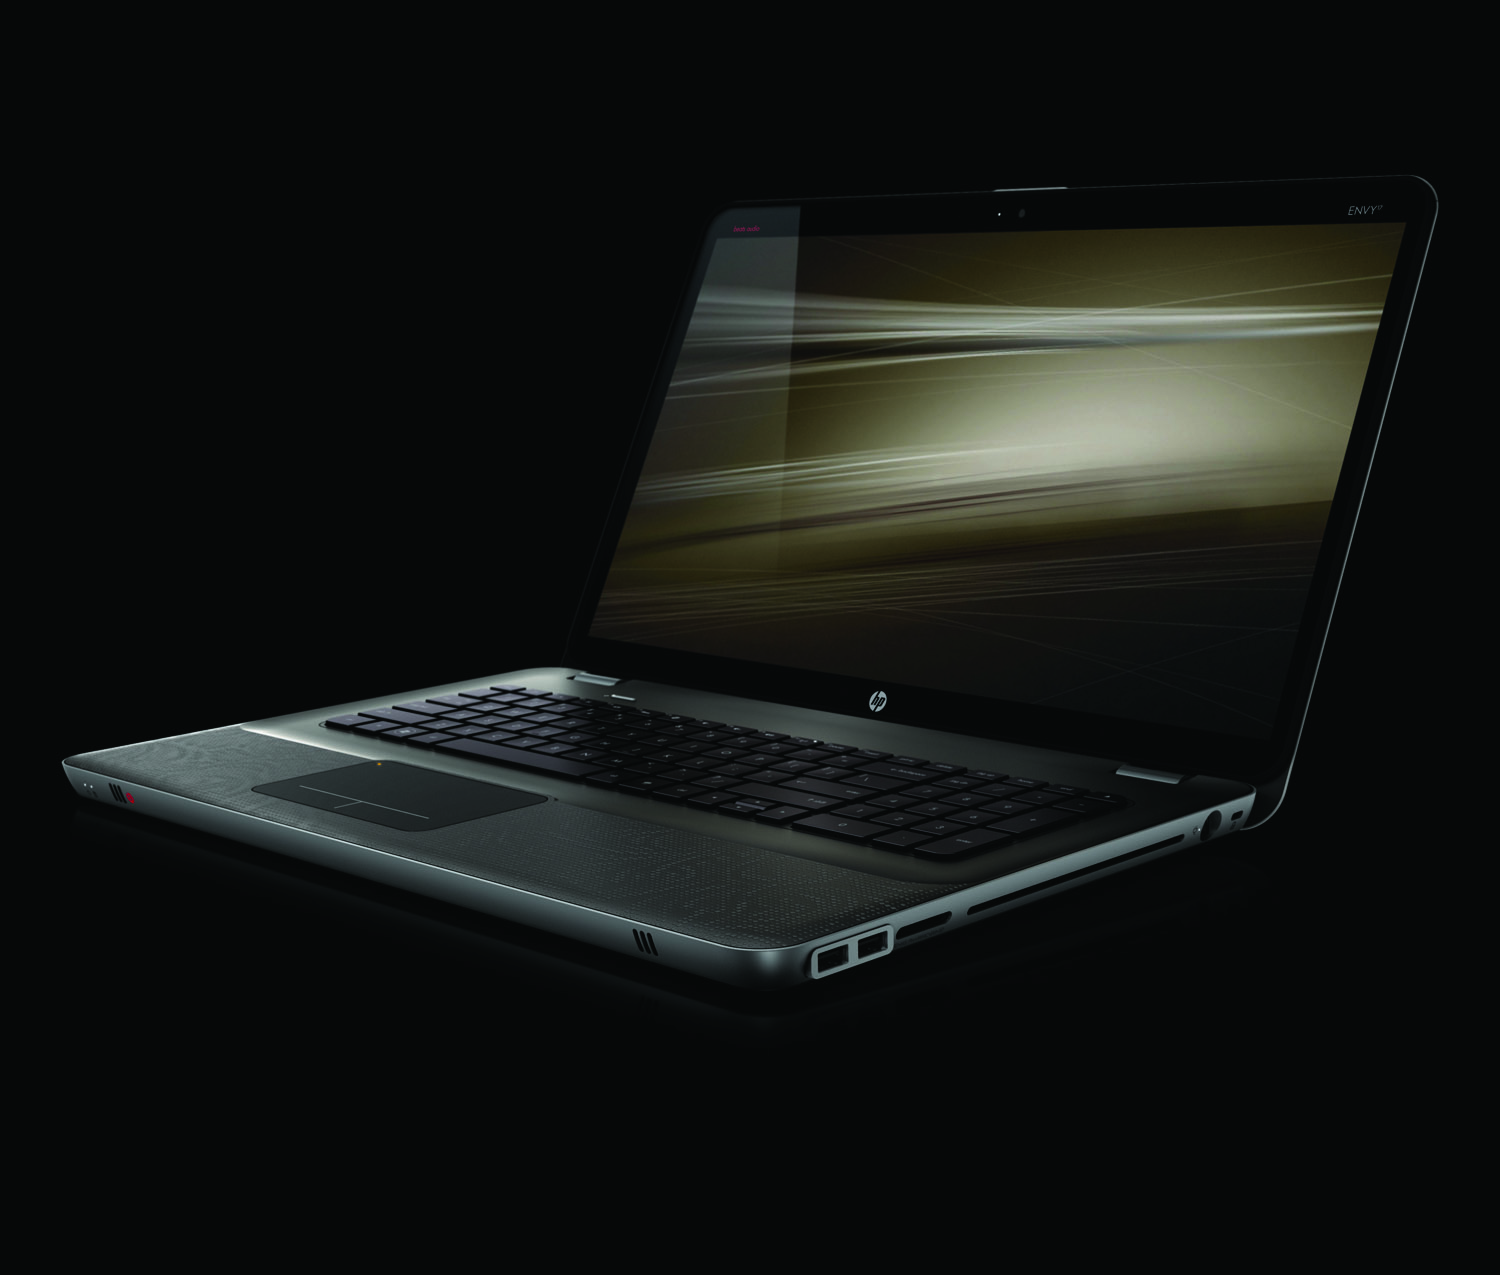 HP Envy 17, front left open on black